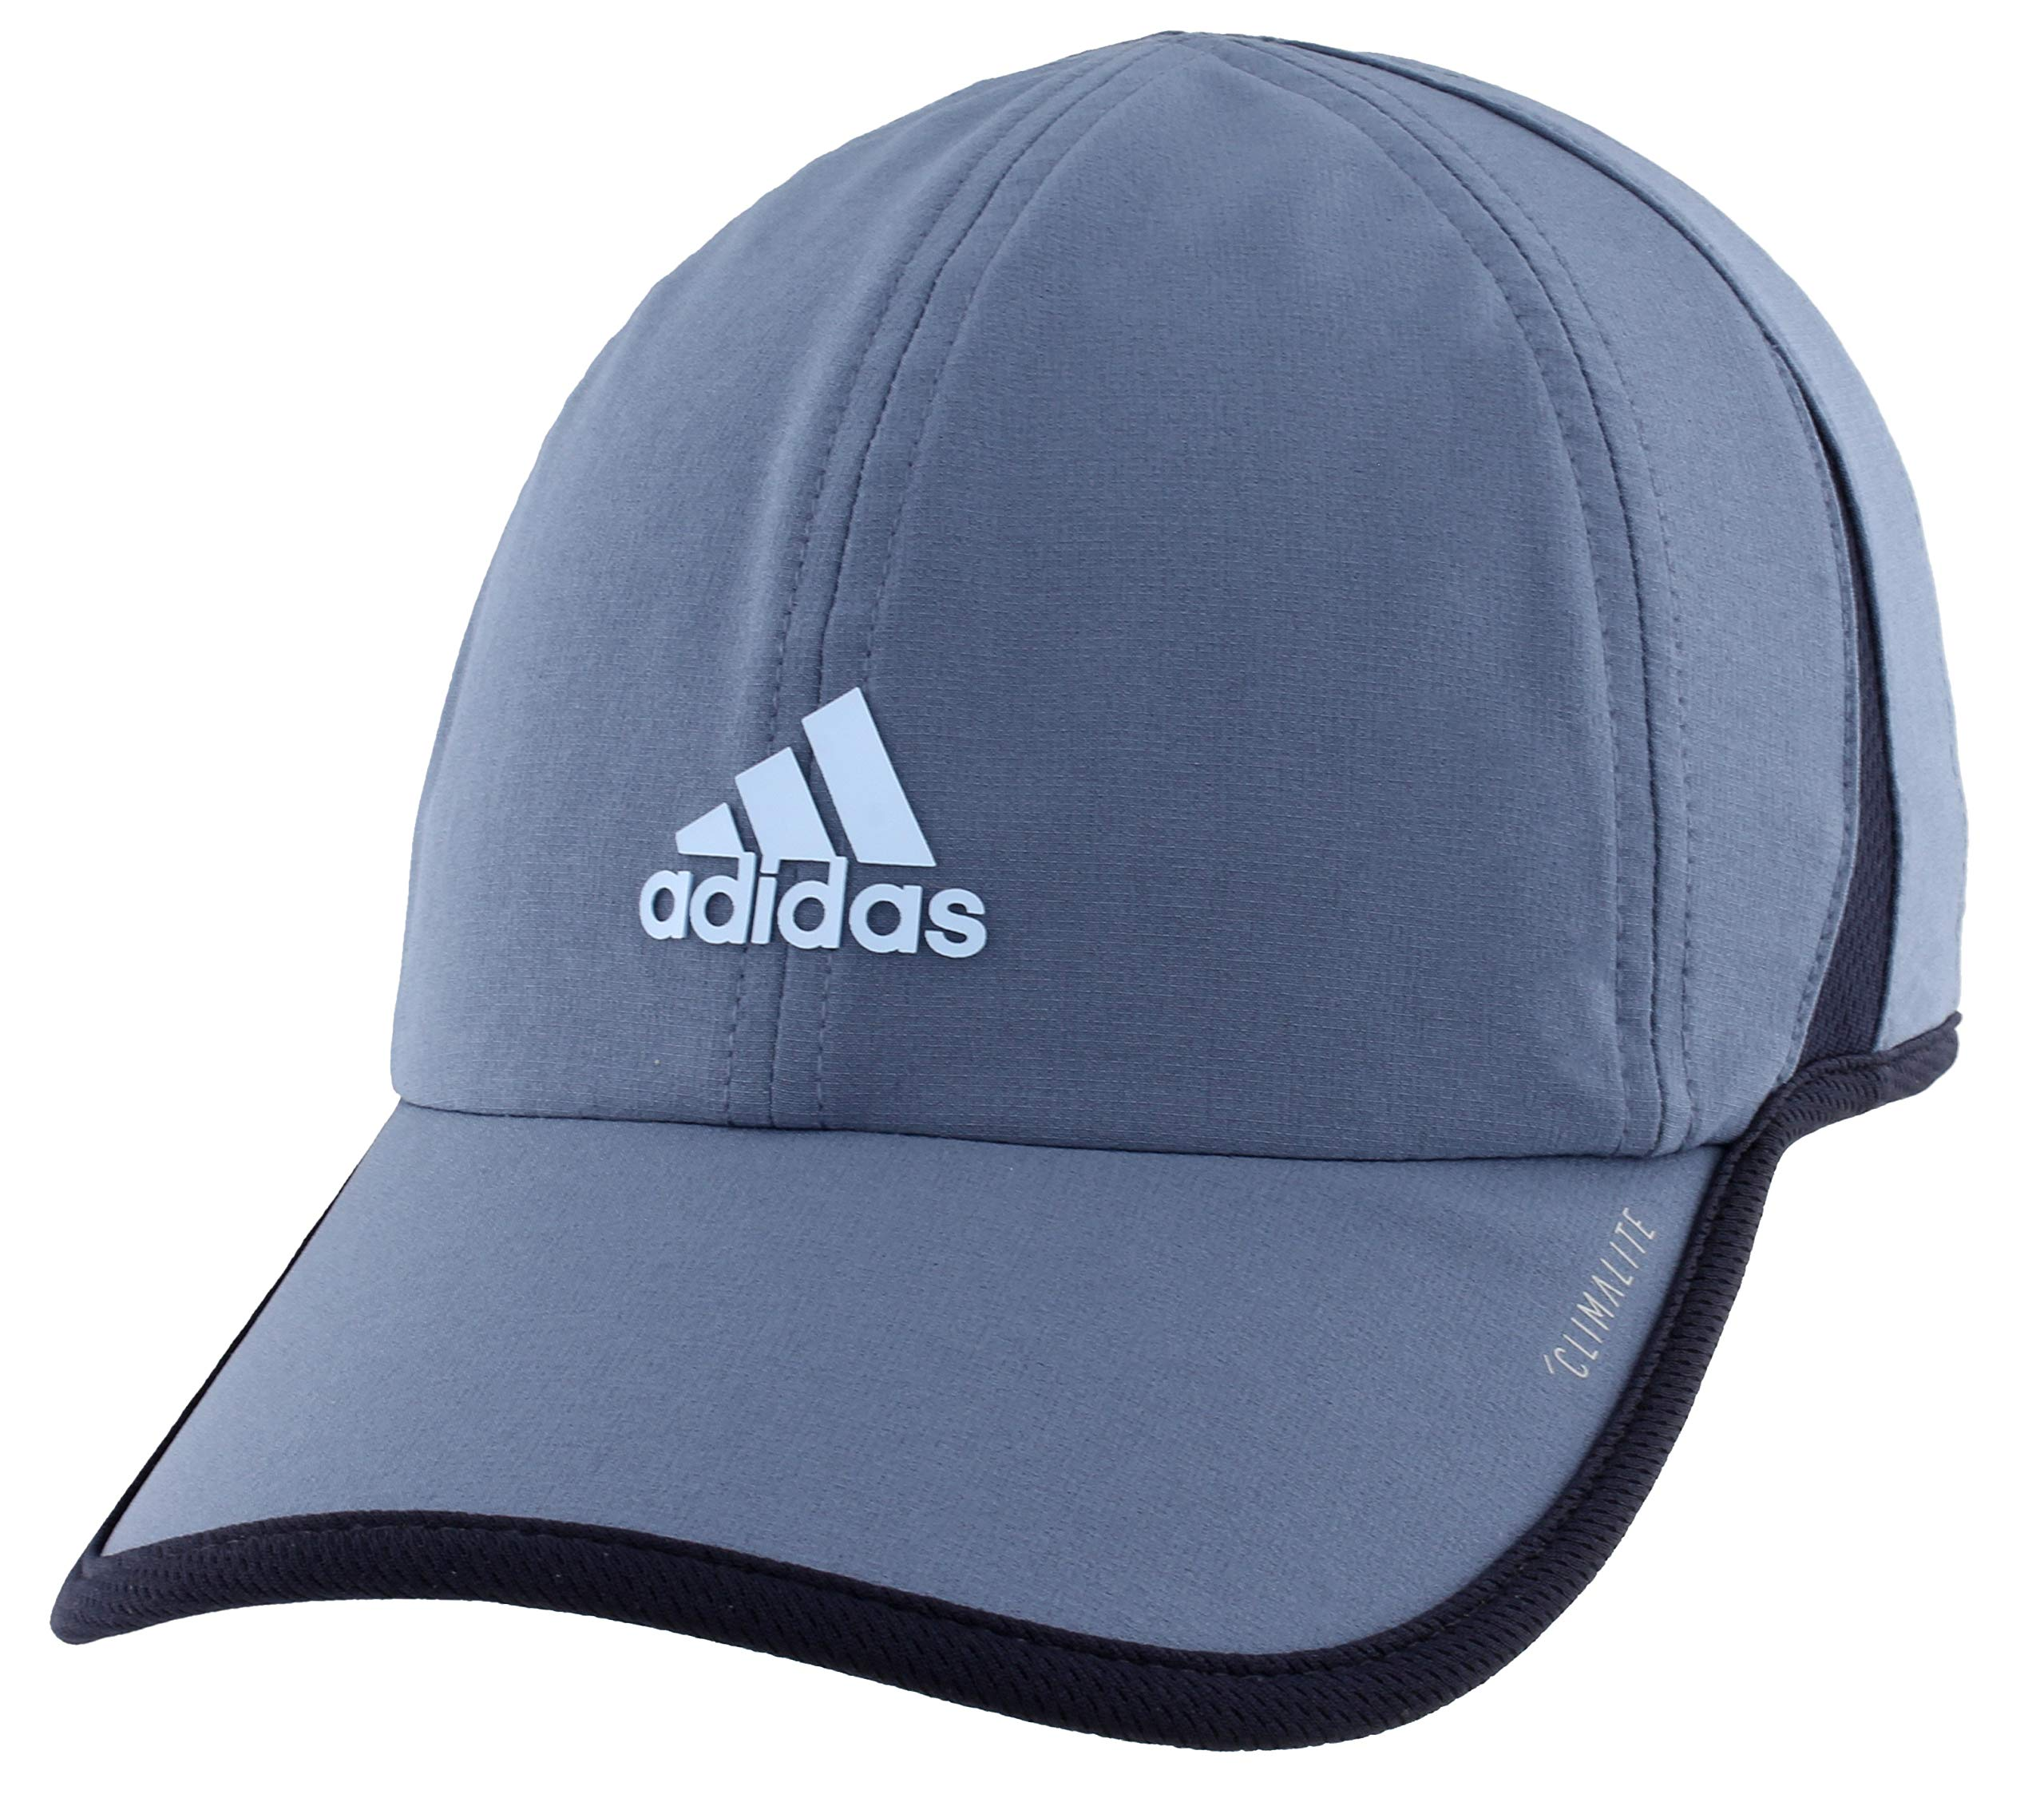 adidas Superlite Relaxed Adjustable Performance Cap, Tech Ink Grey/Legend Ink Blue/Glow Blue, One Size